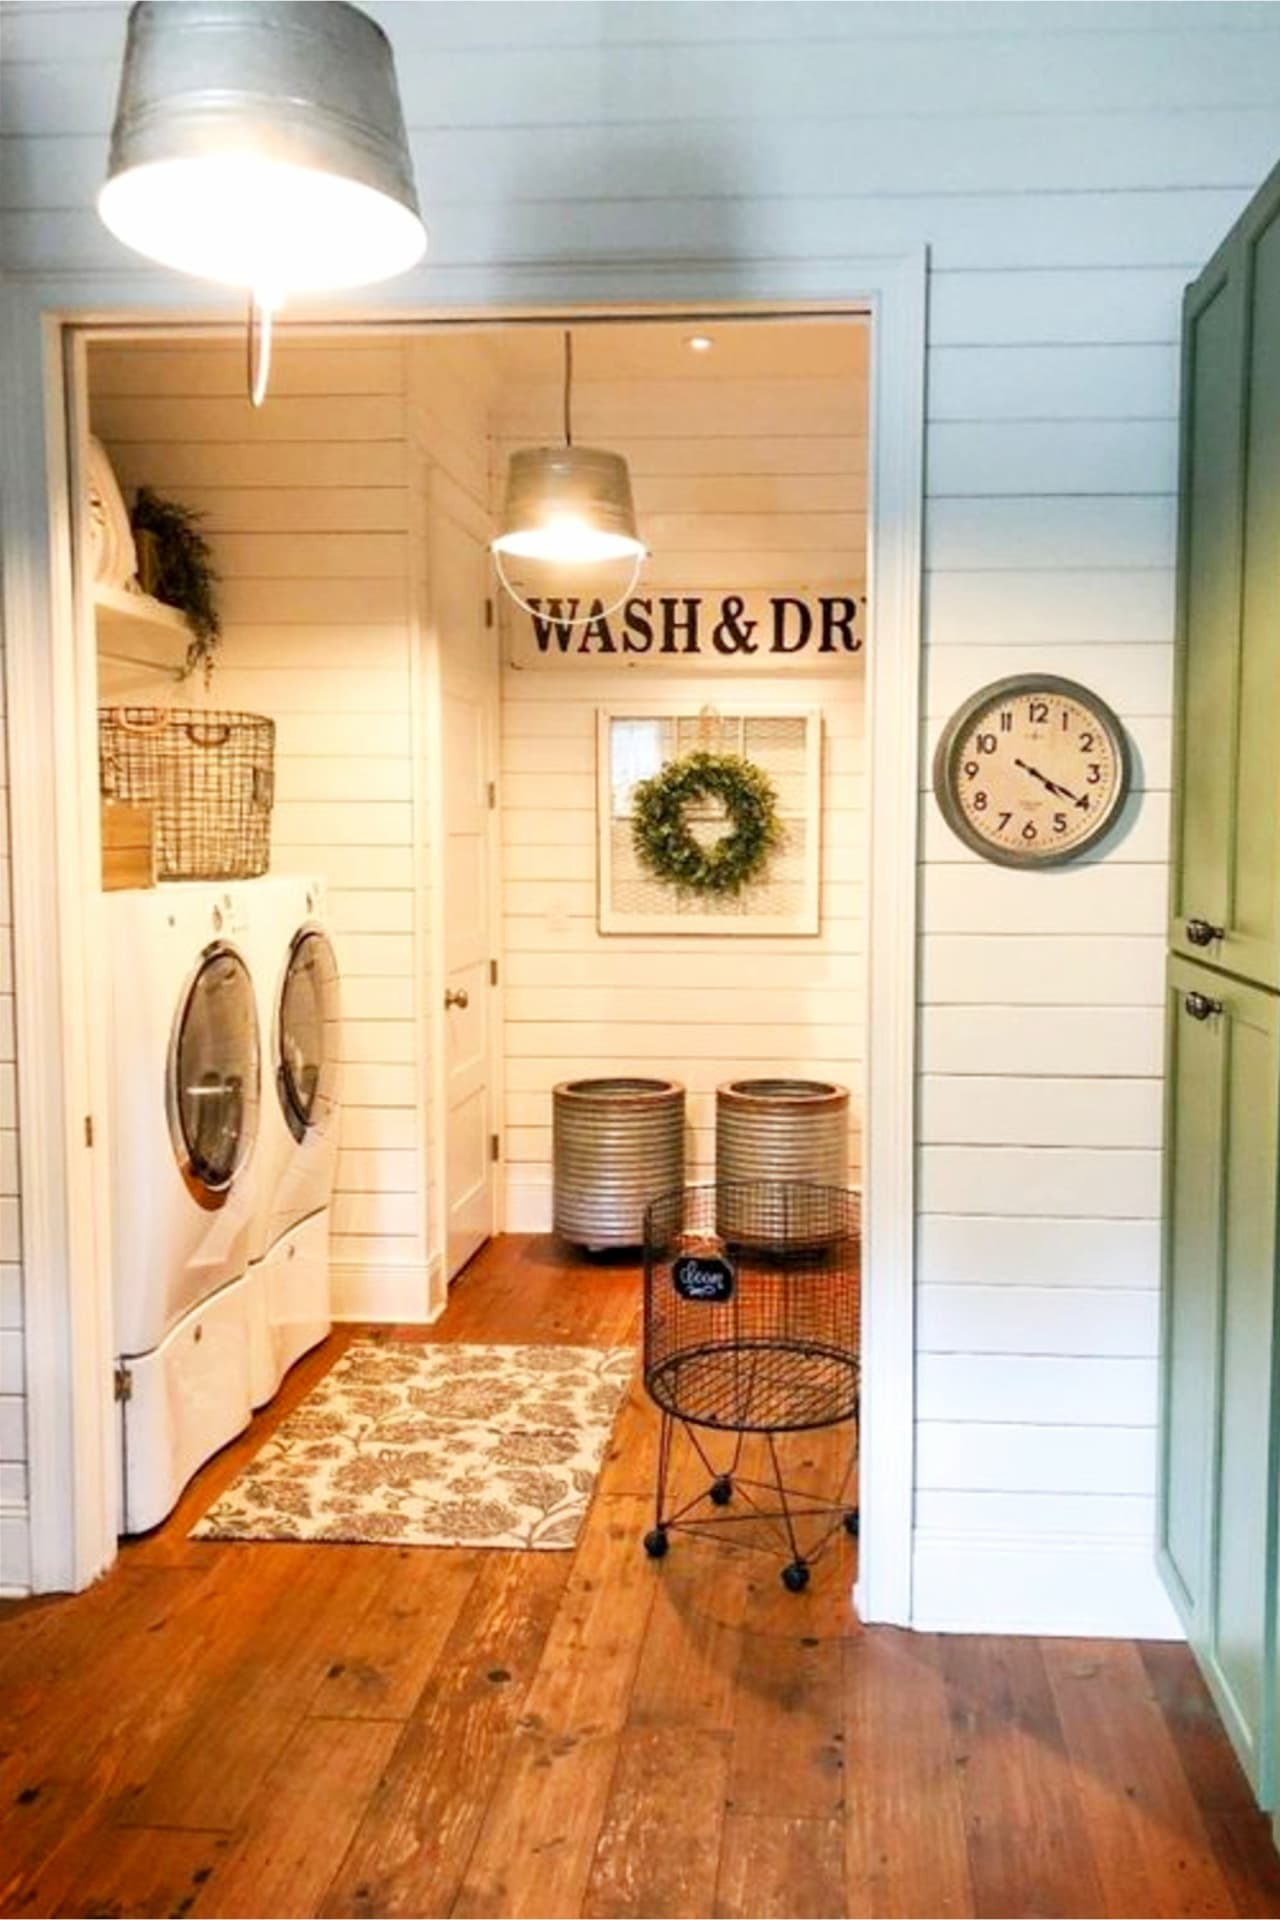 Farmhouse laundry room ideas - small basement laundry room and more Basement Ideas!  Gorgeous DIY finished basement ideas on a budget - partially finished basement ideas and small basement decor ideas for finishing and decorating a basement on a budget